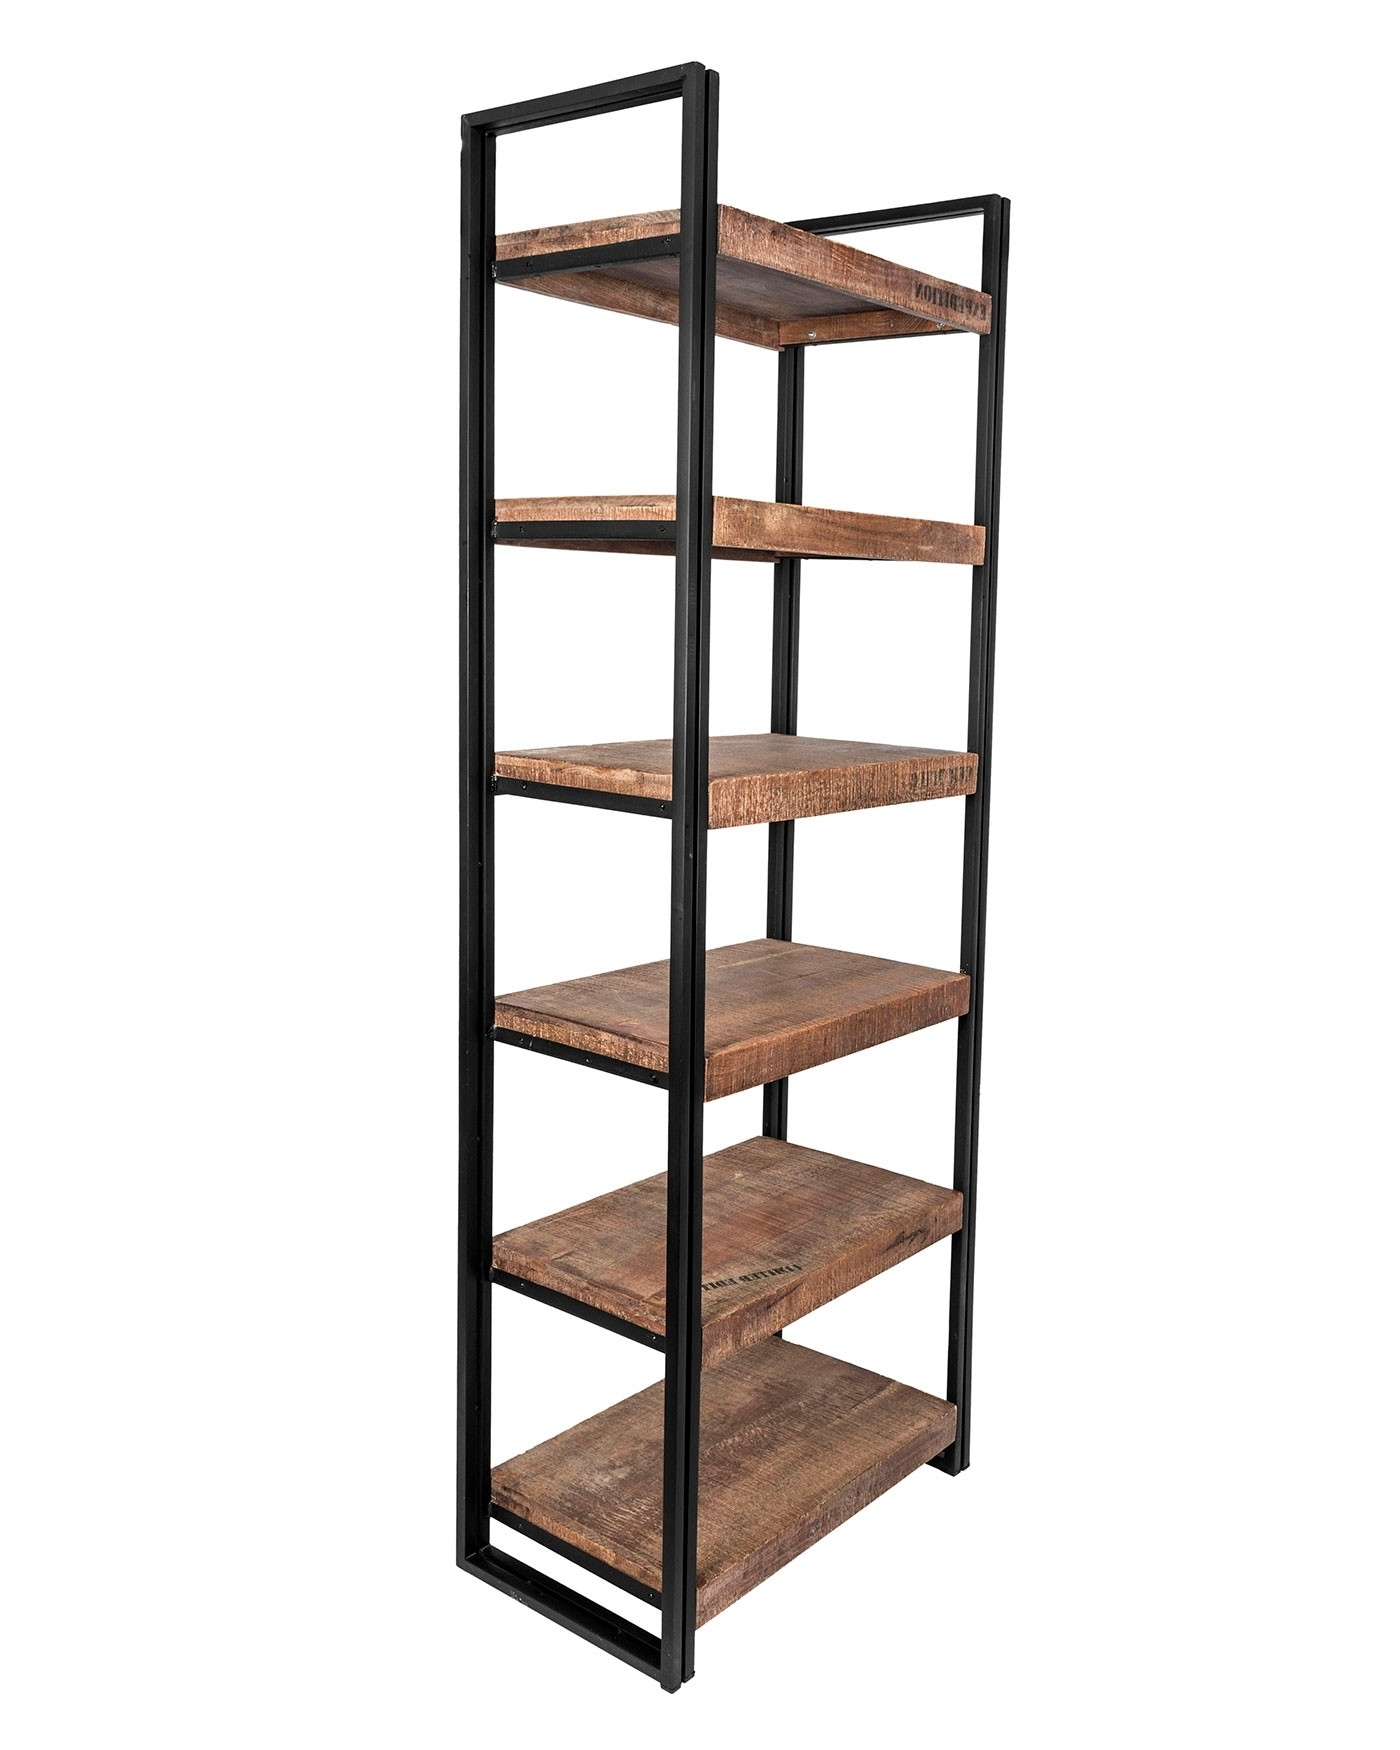 Reclaimed Wood Open Shelf Tall Bookcase Industrial Furniture Range With Latest Reclaimed Wood Bookcases (View 7 of 15)